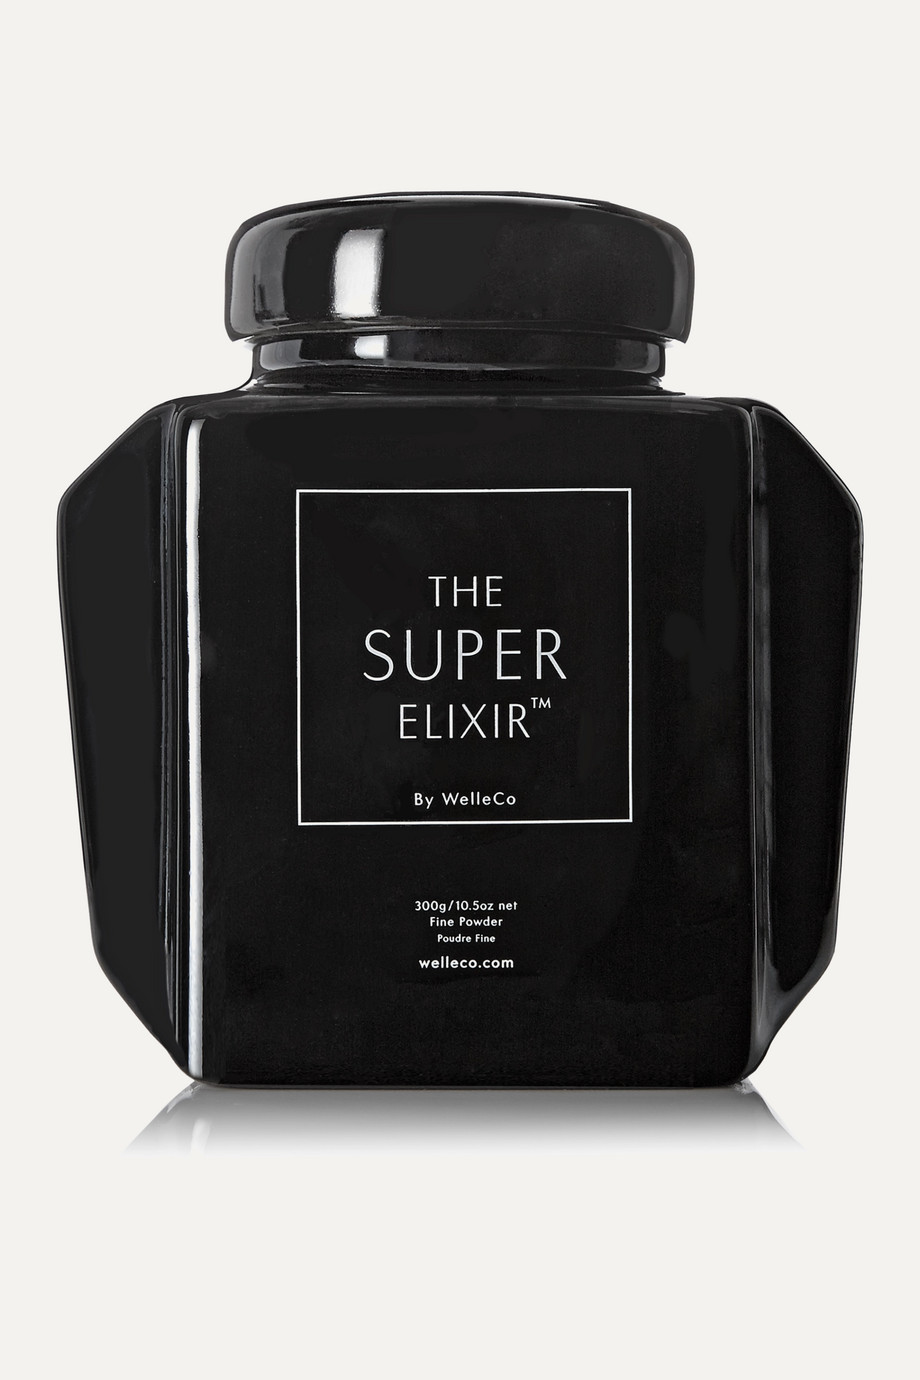 WelleCo The Super Elixir with Caddy, 300g